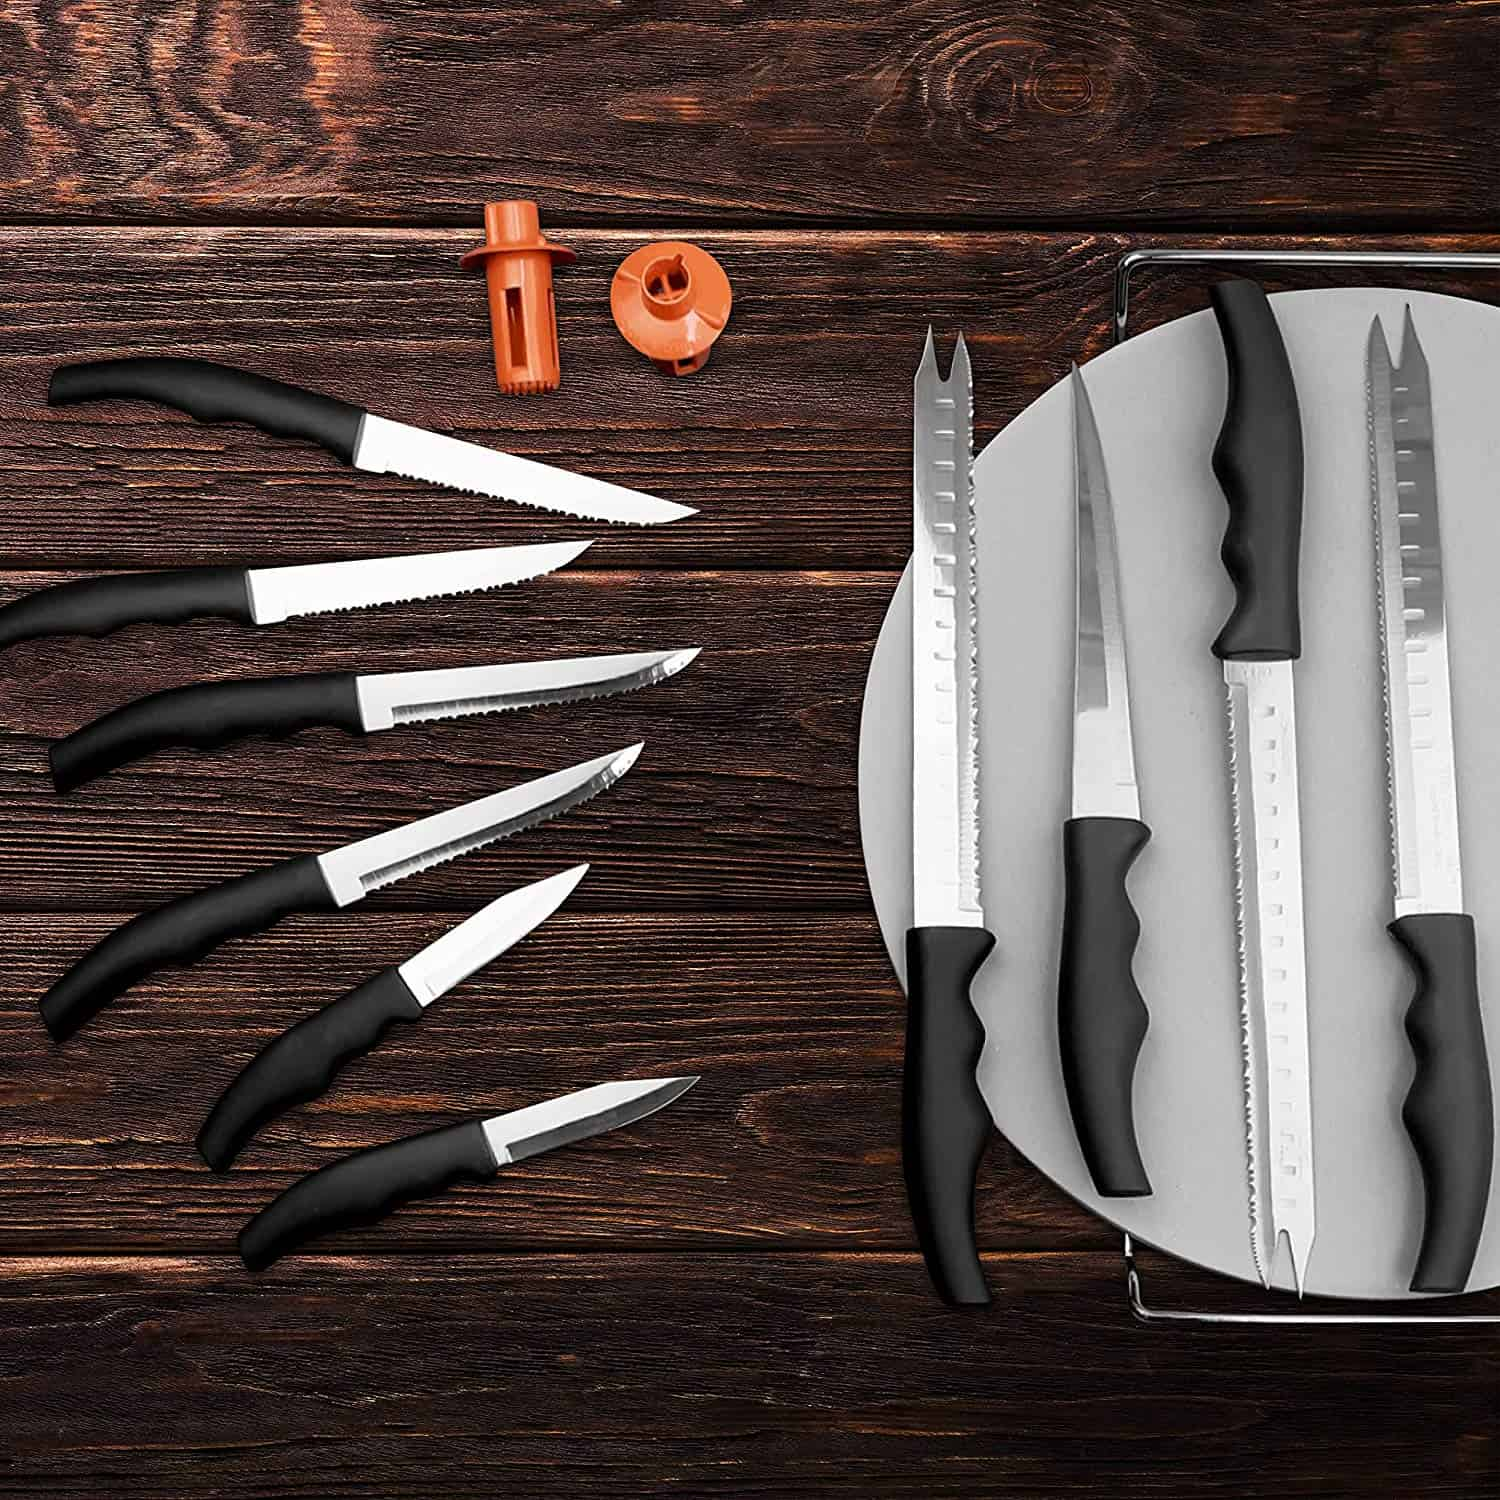 forefer sharp knife set